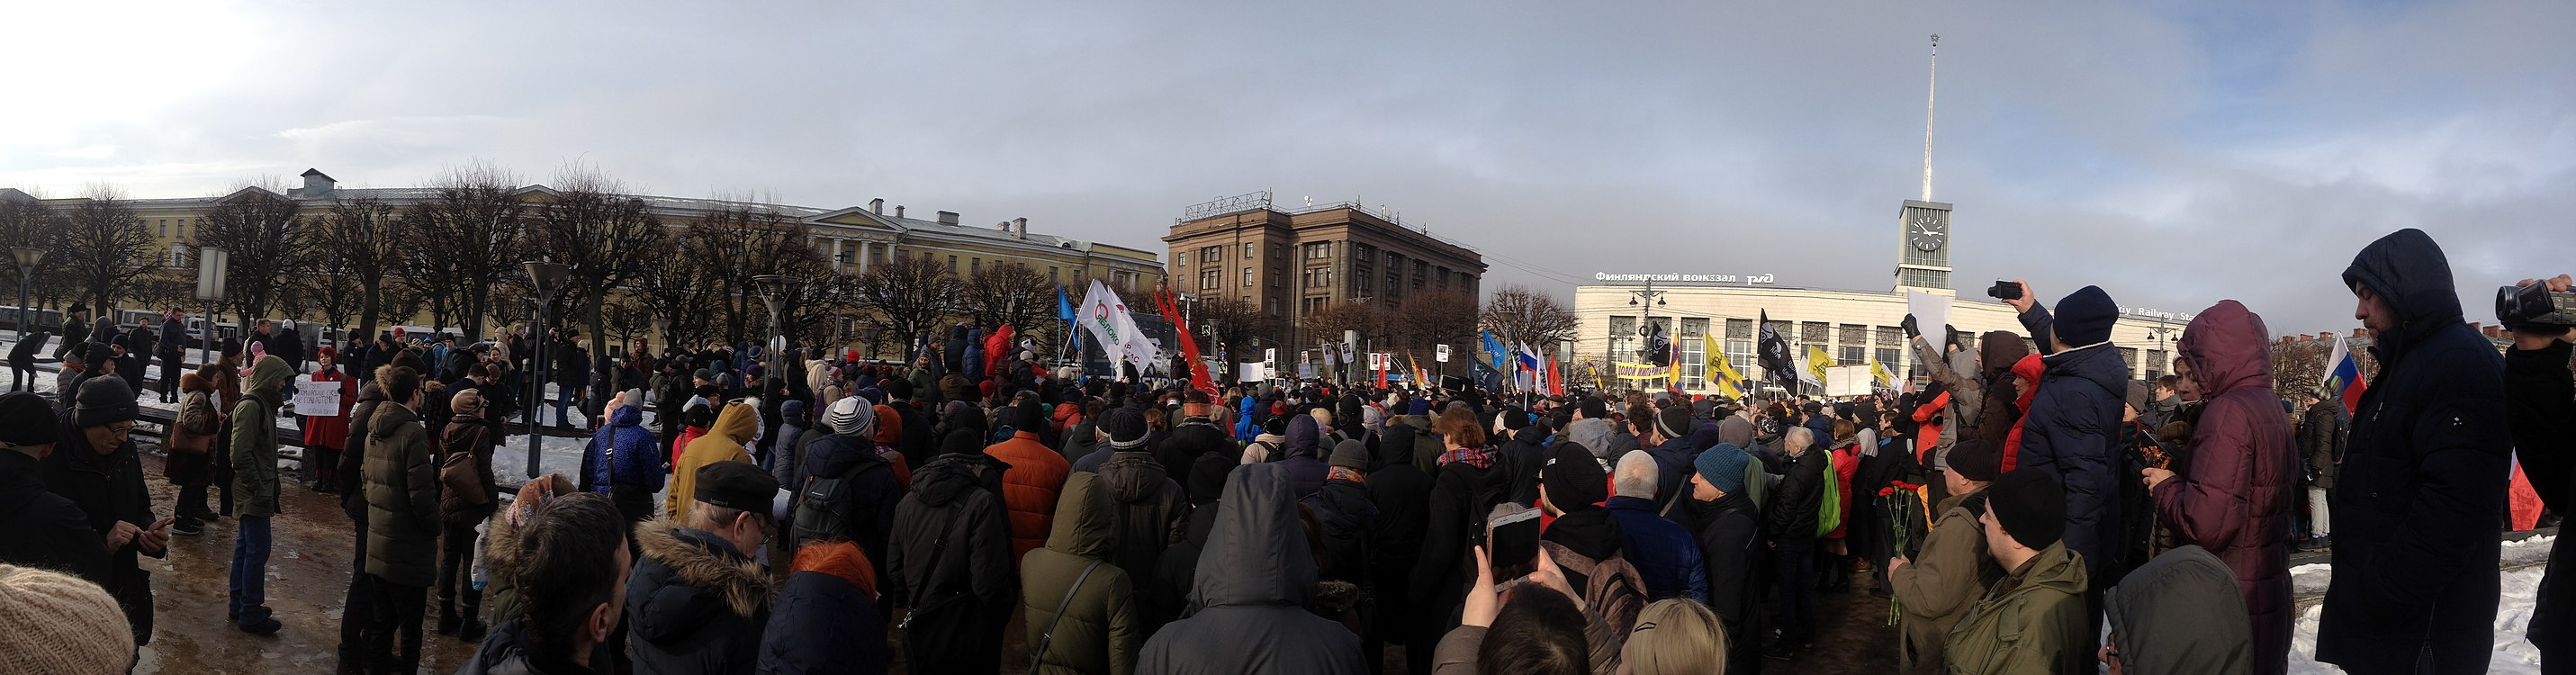 Boris Nemtsov memorial meeting in St. Petersburg 2019-02-24.IMG 1080.jpg